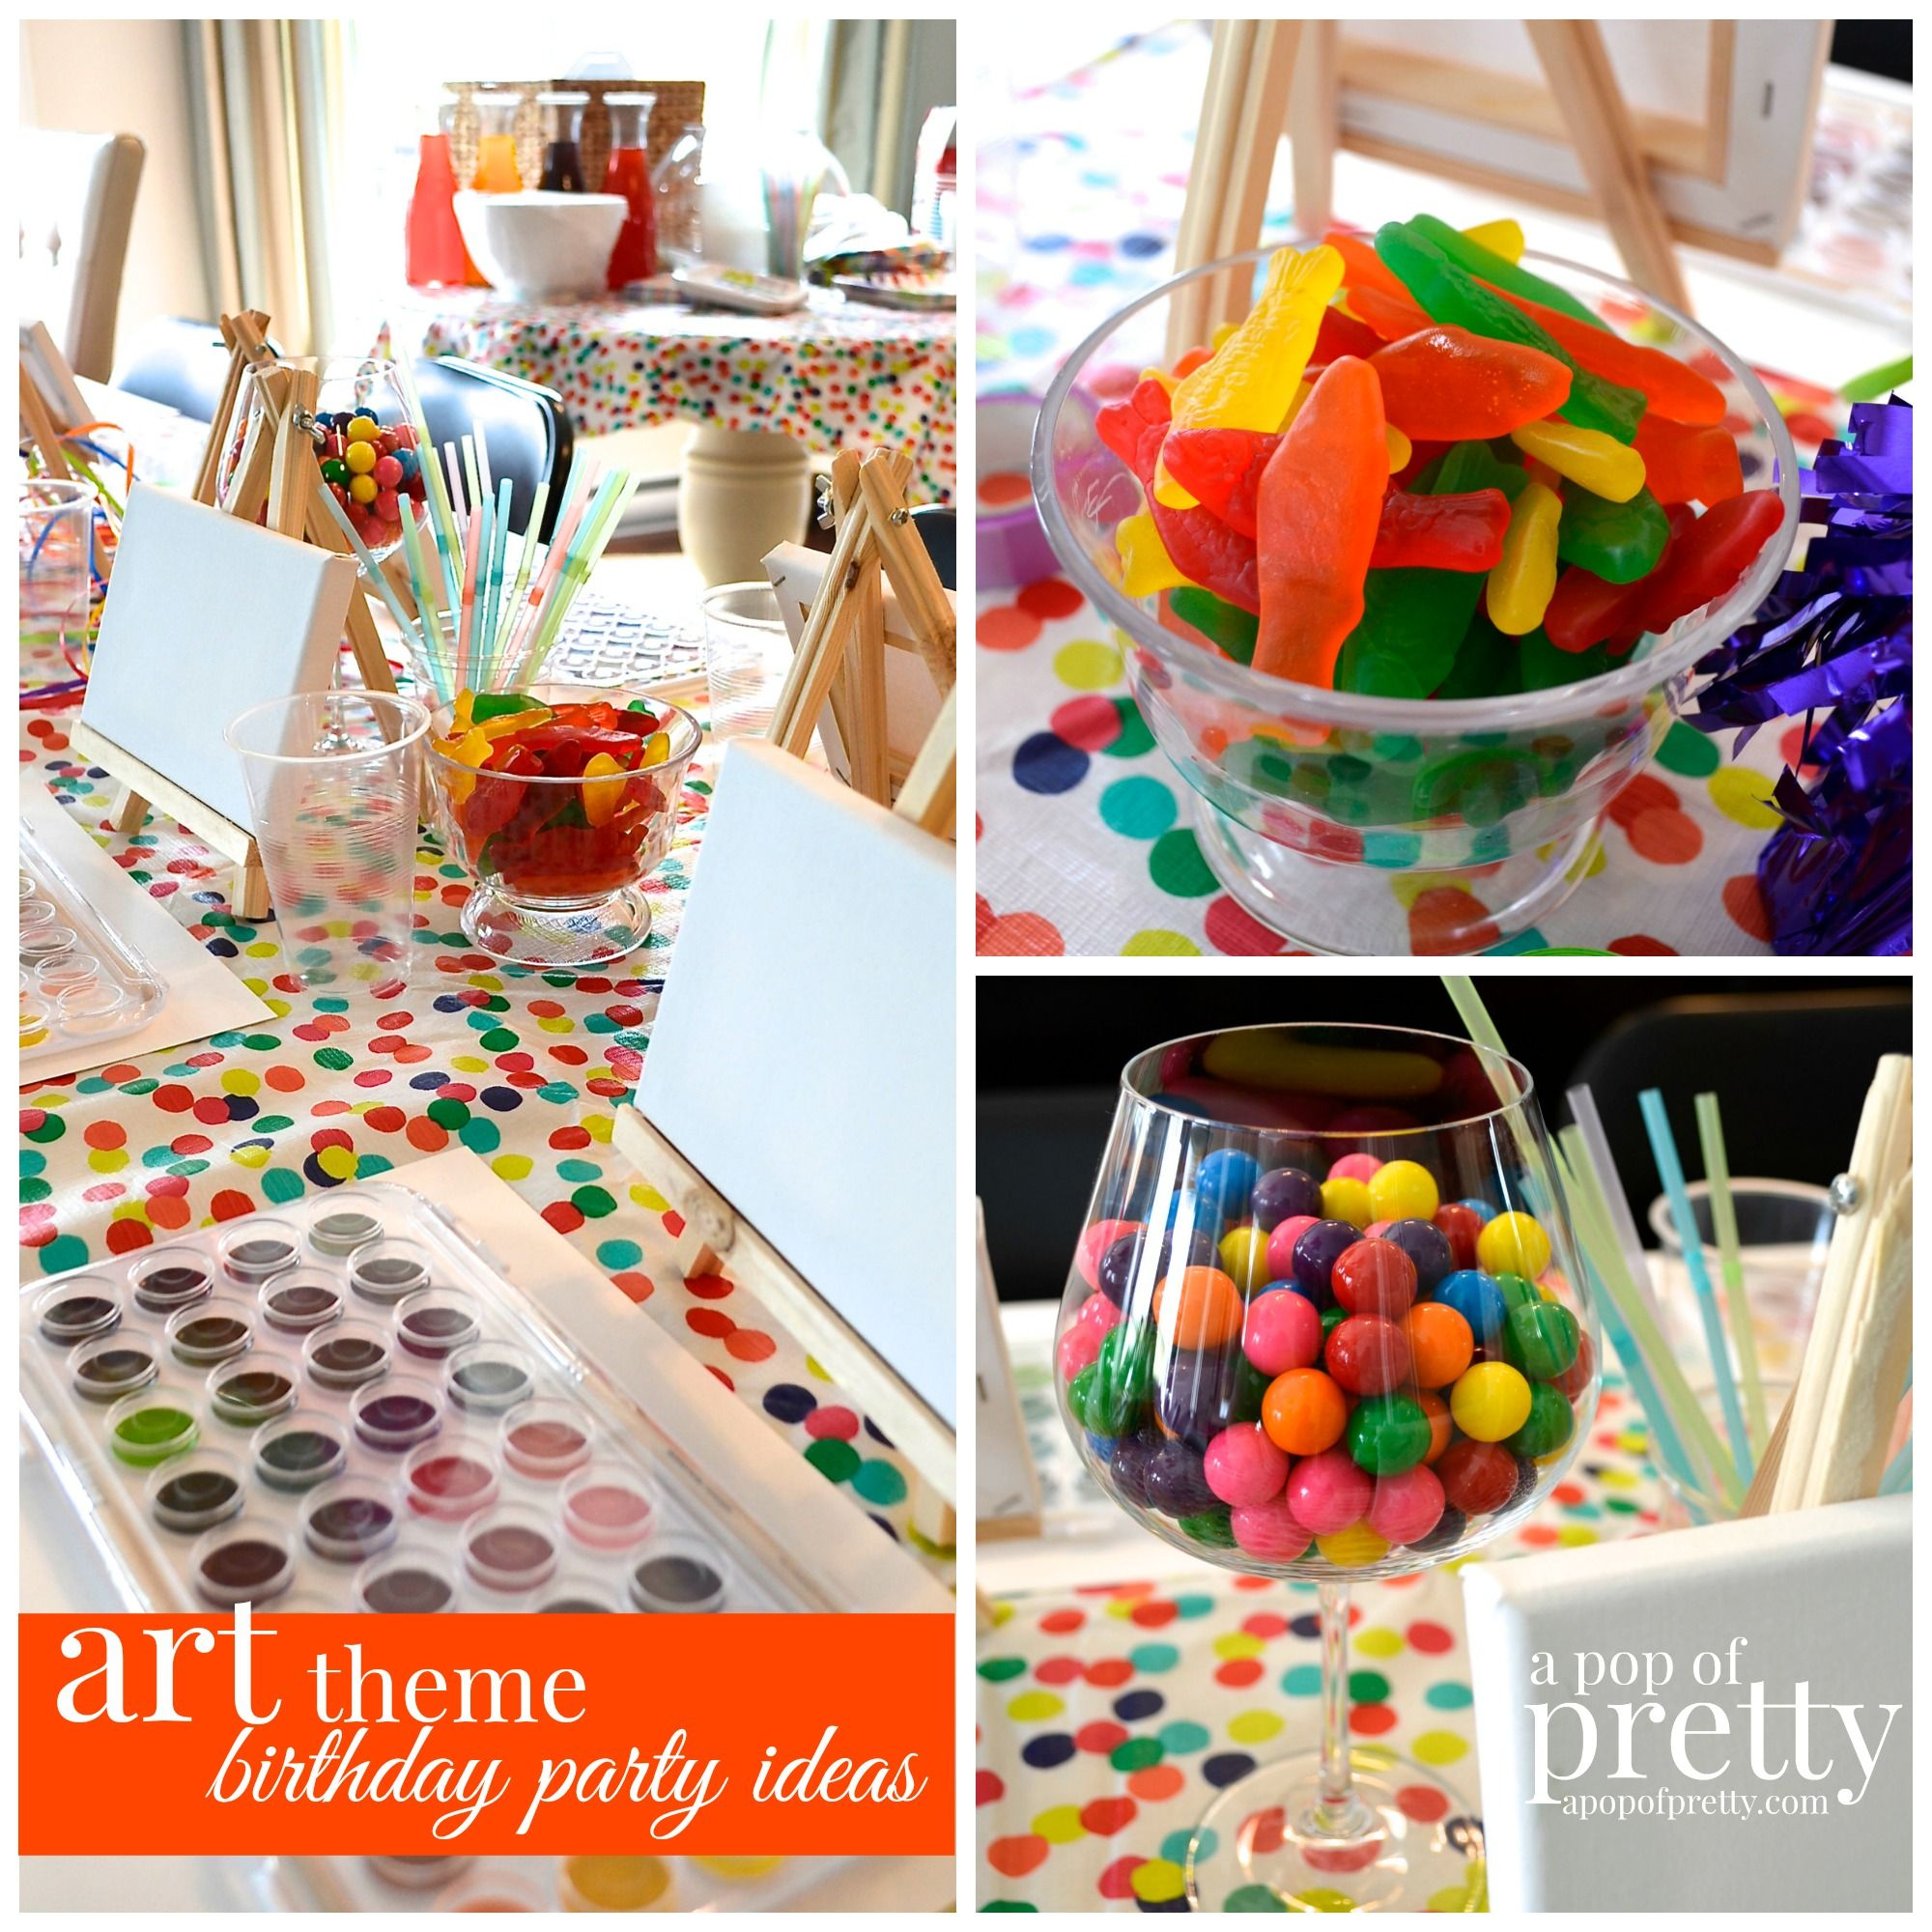 Birthday Ideas Fun Art Theme Party for Girls Art themes Color